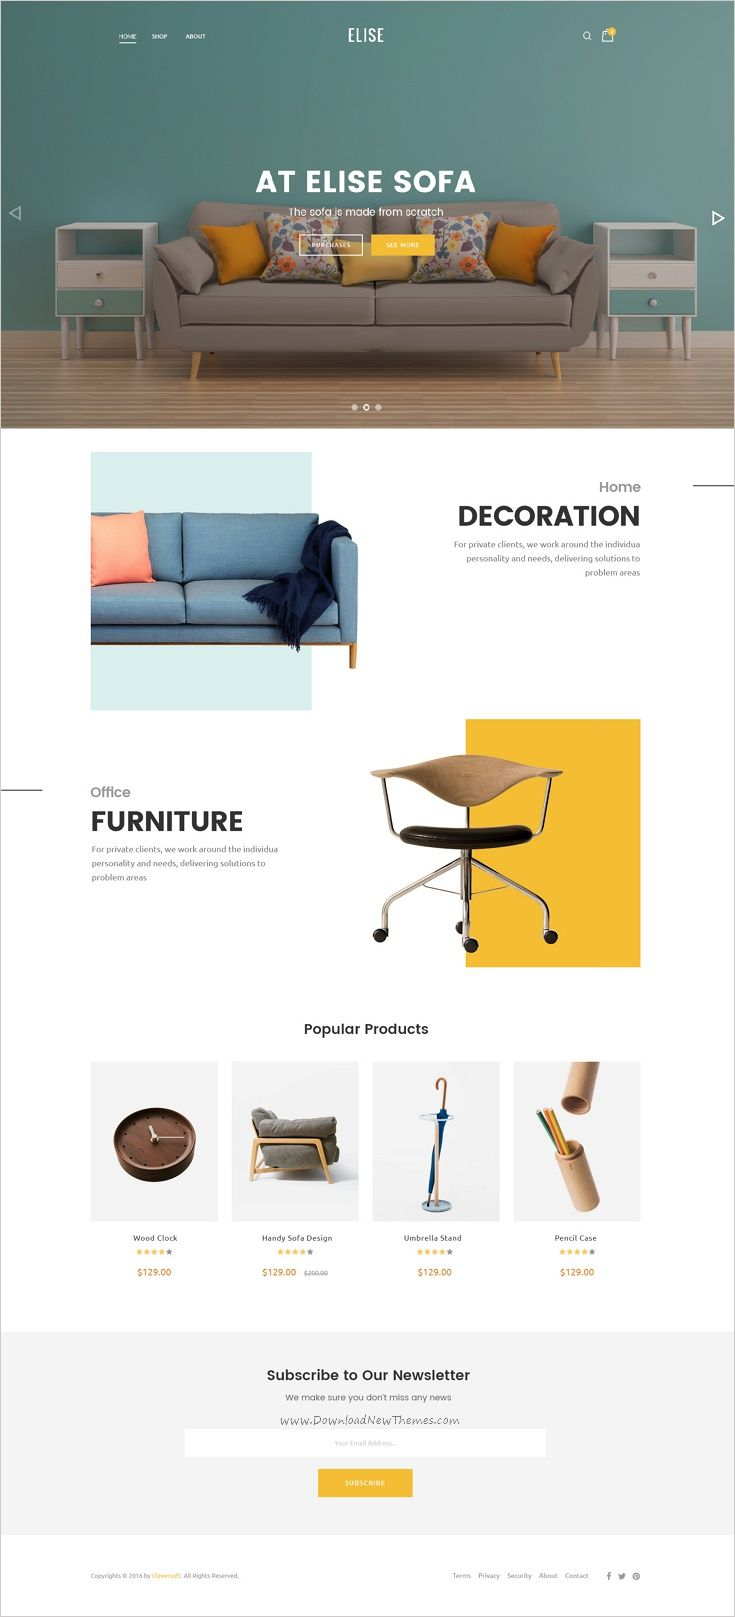 Elise Is A Wonderful Premium Psd Template For Furniture Store